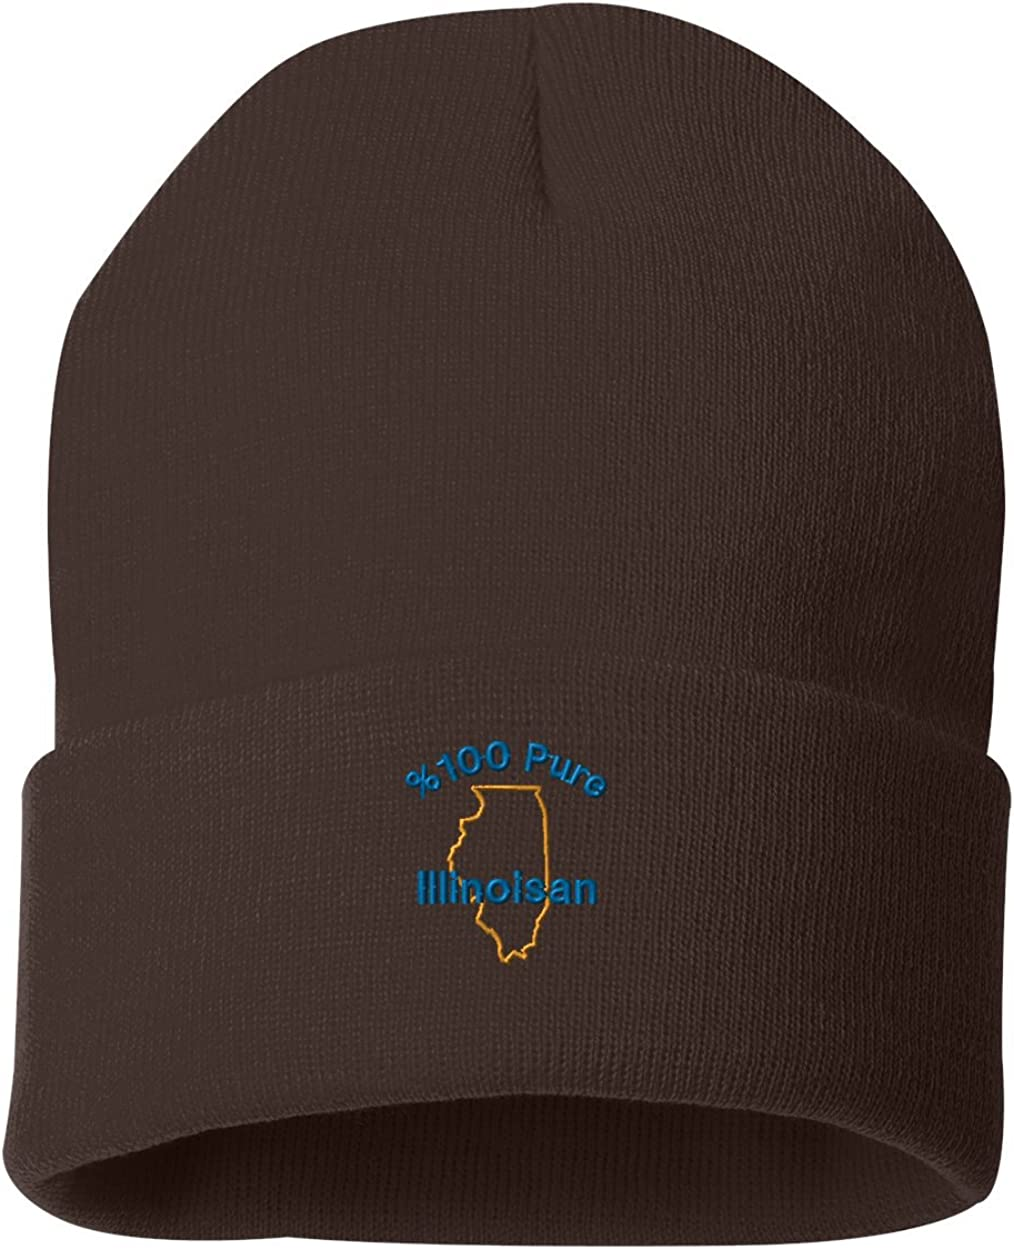 /%100 Pure Illinoisan Custom Personalized Embroidery Embroidered Beanie